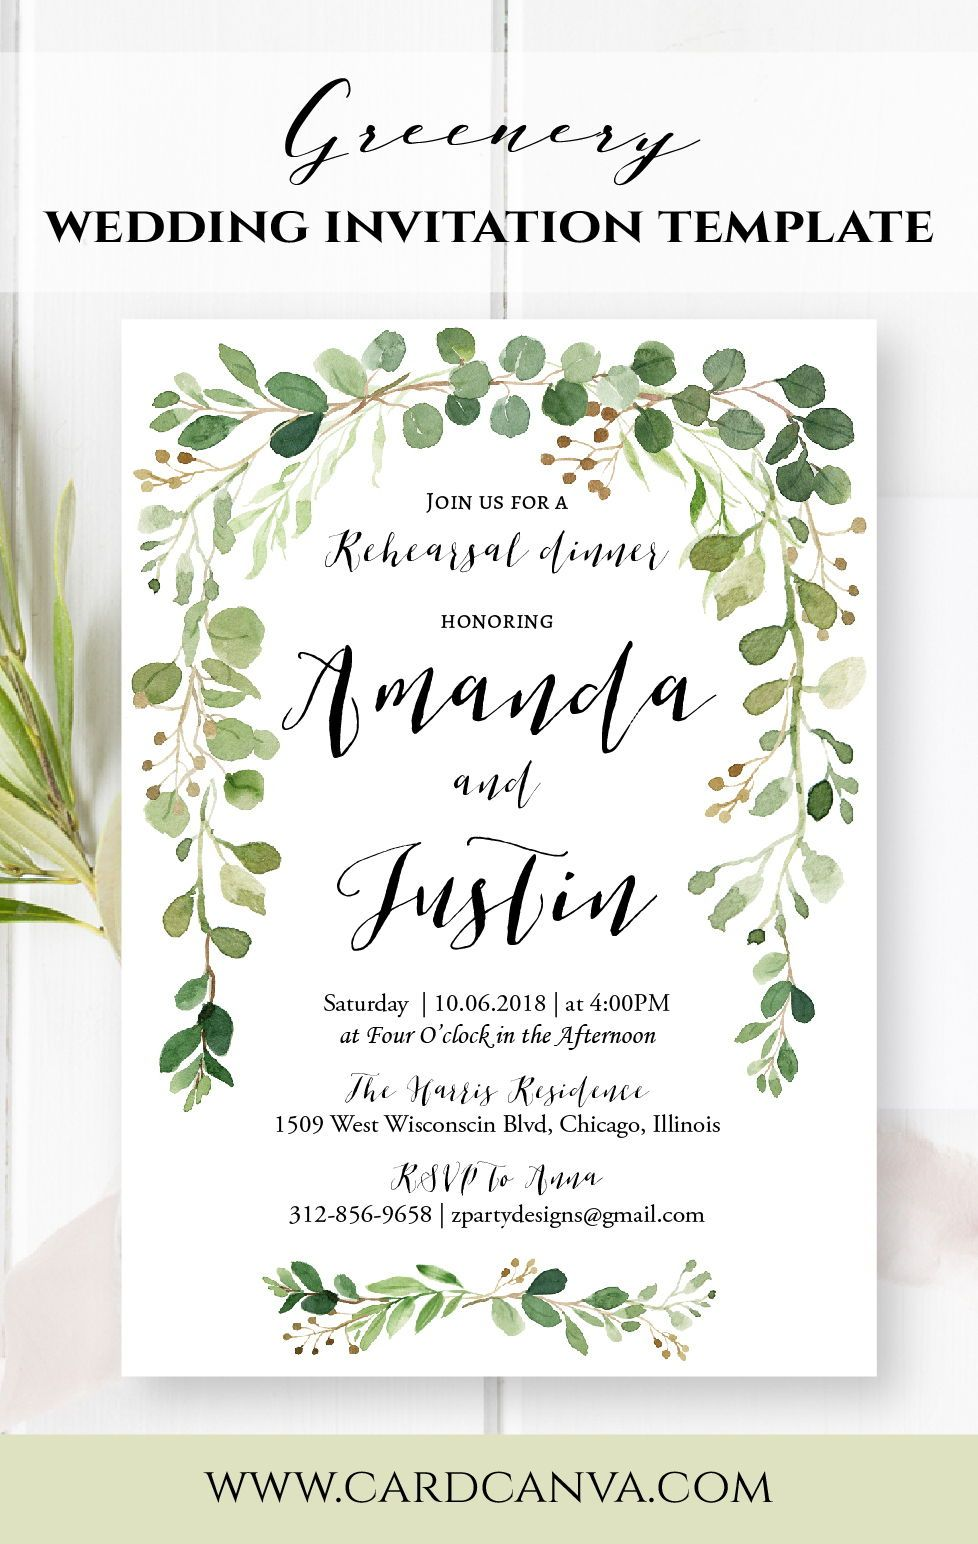 Greenery Rehearsal Dinner Invitation Wedding